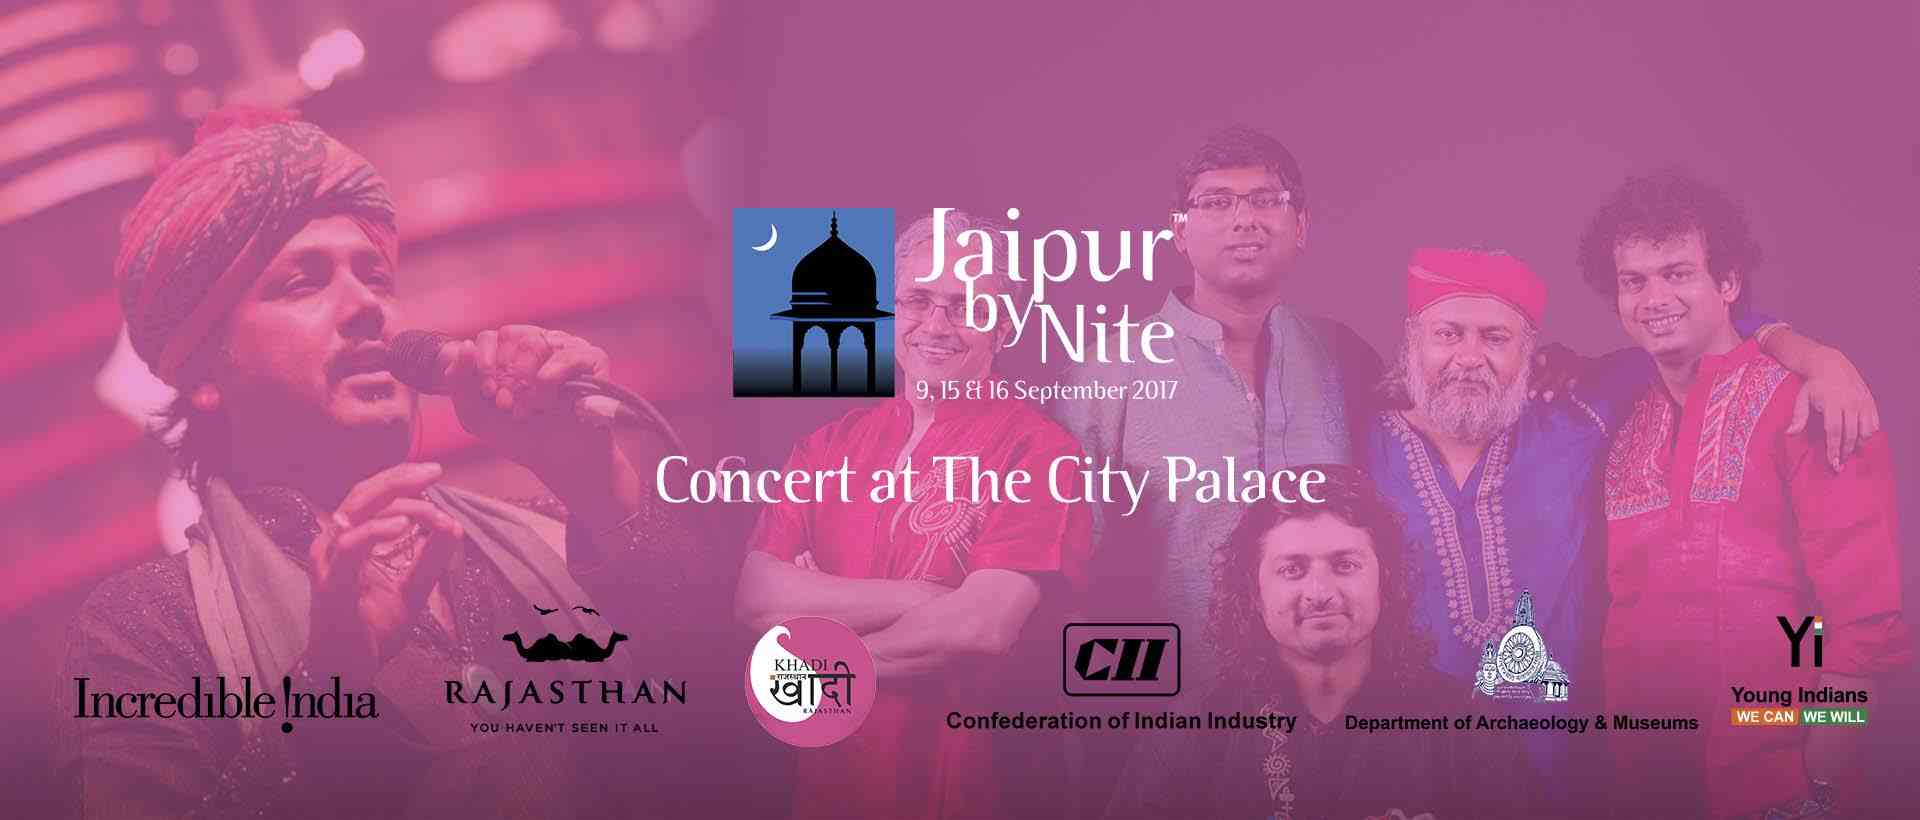 Indian Ocean and Mame Khan to rock 'Jaipur By Nite'